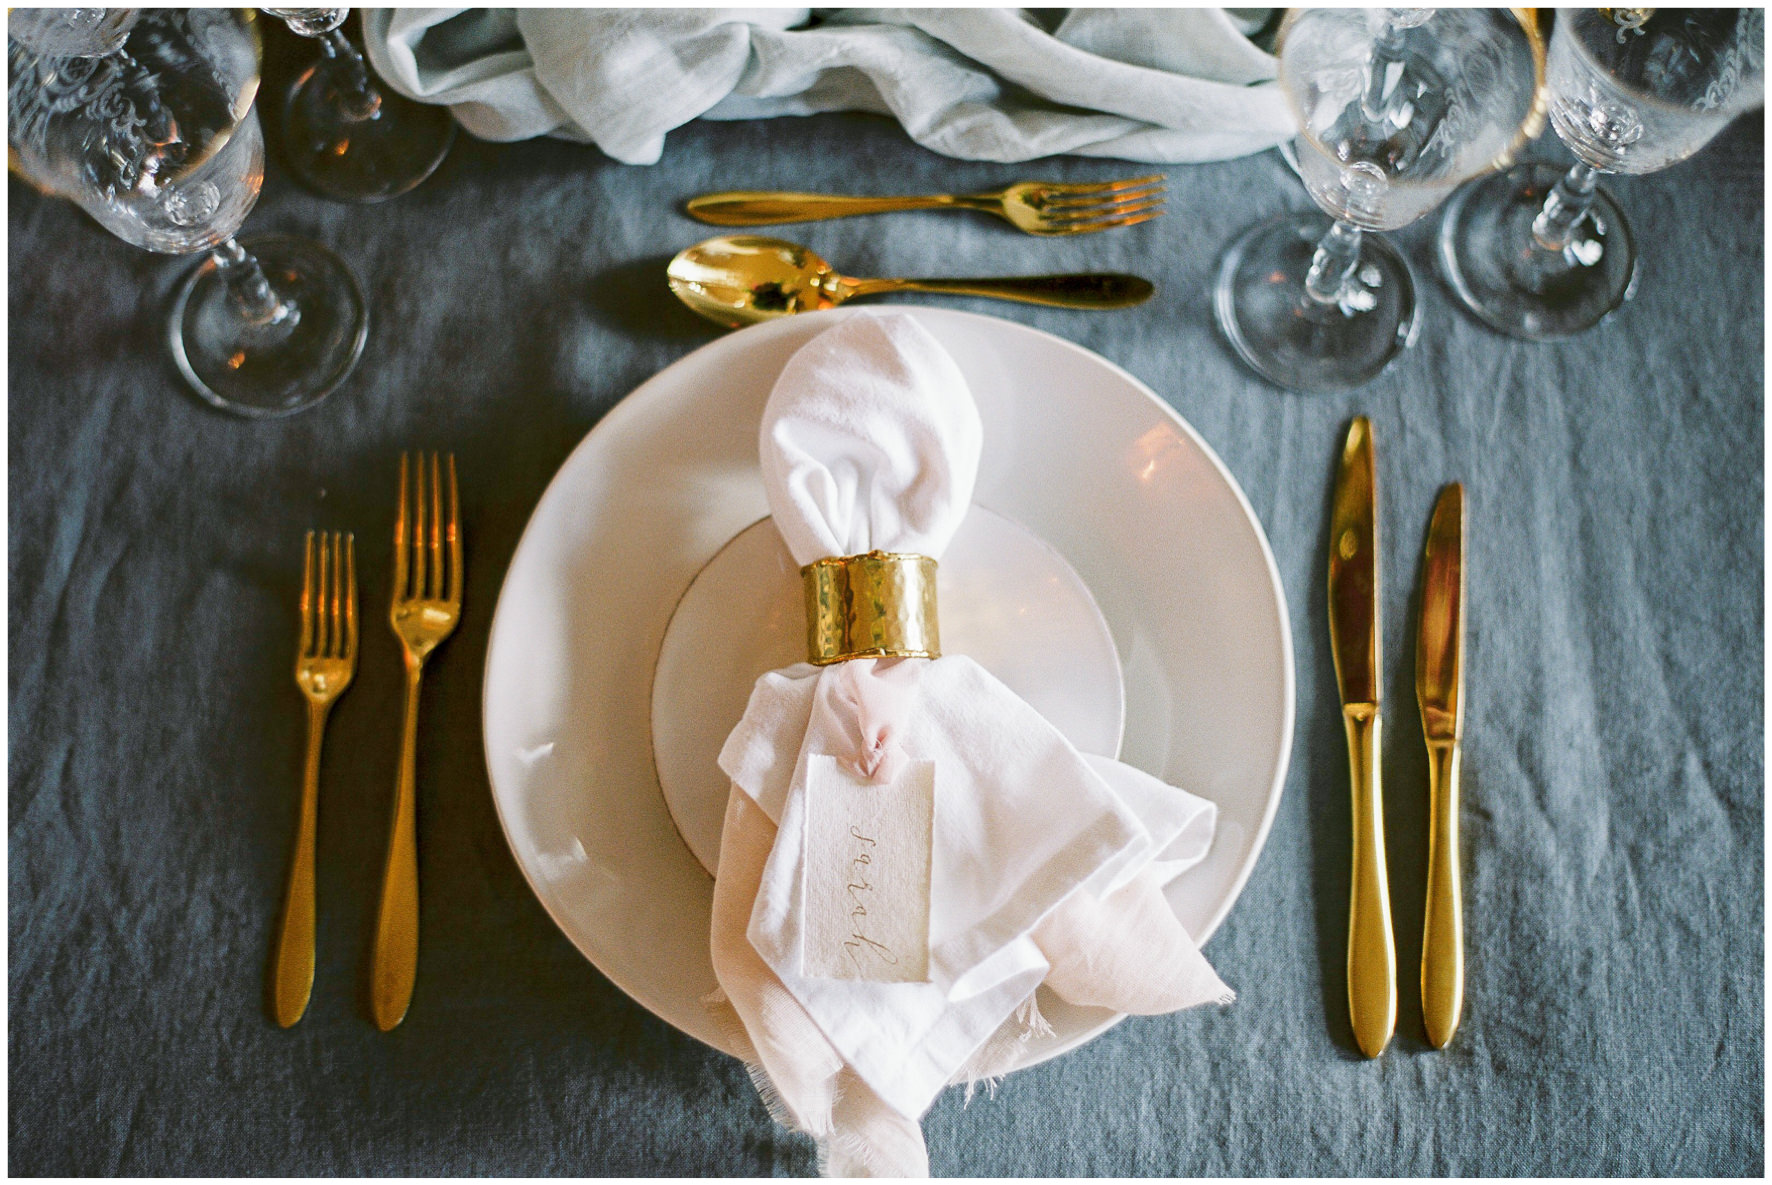 Lucy Davenport Photography, Holdenby House, wedding venue, Northamptonshire, florals, Ronny Colbie, tablescape, wedding breakfast, centrepiece